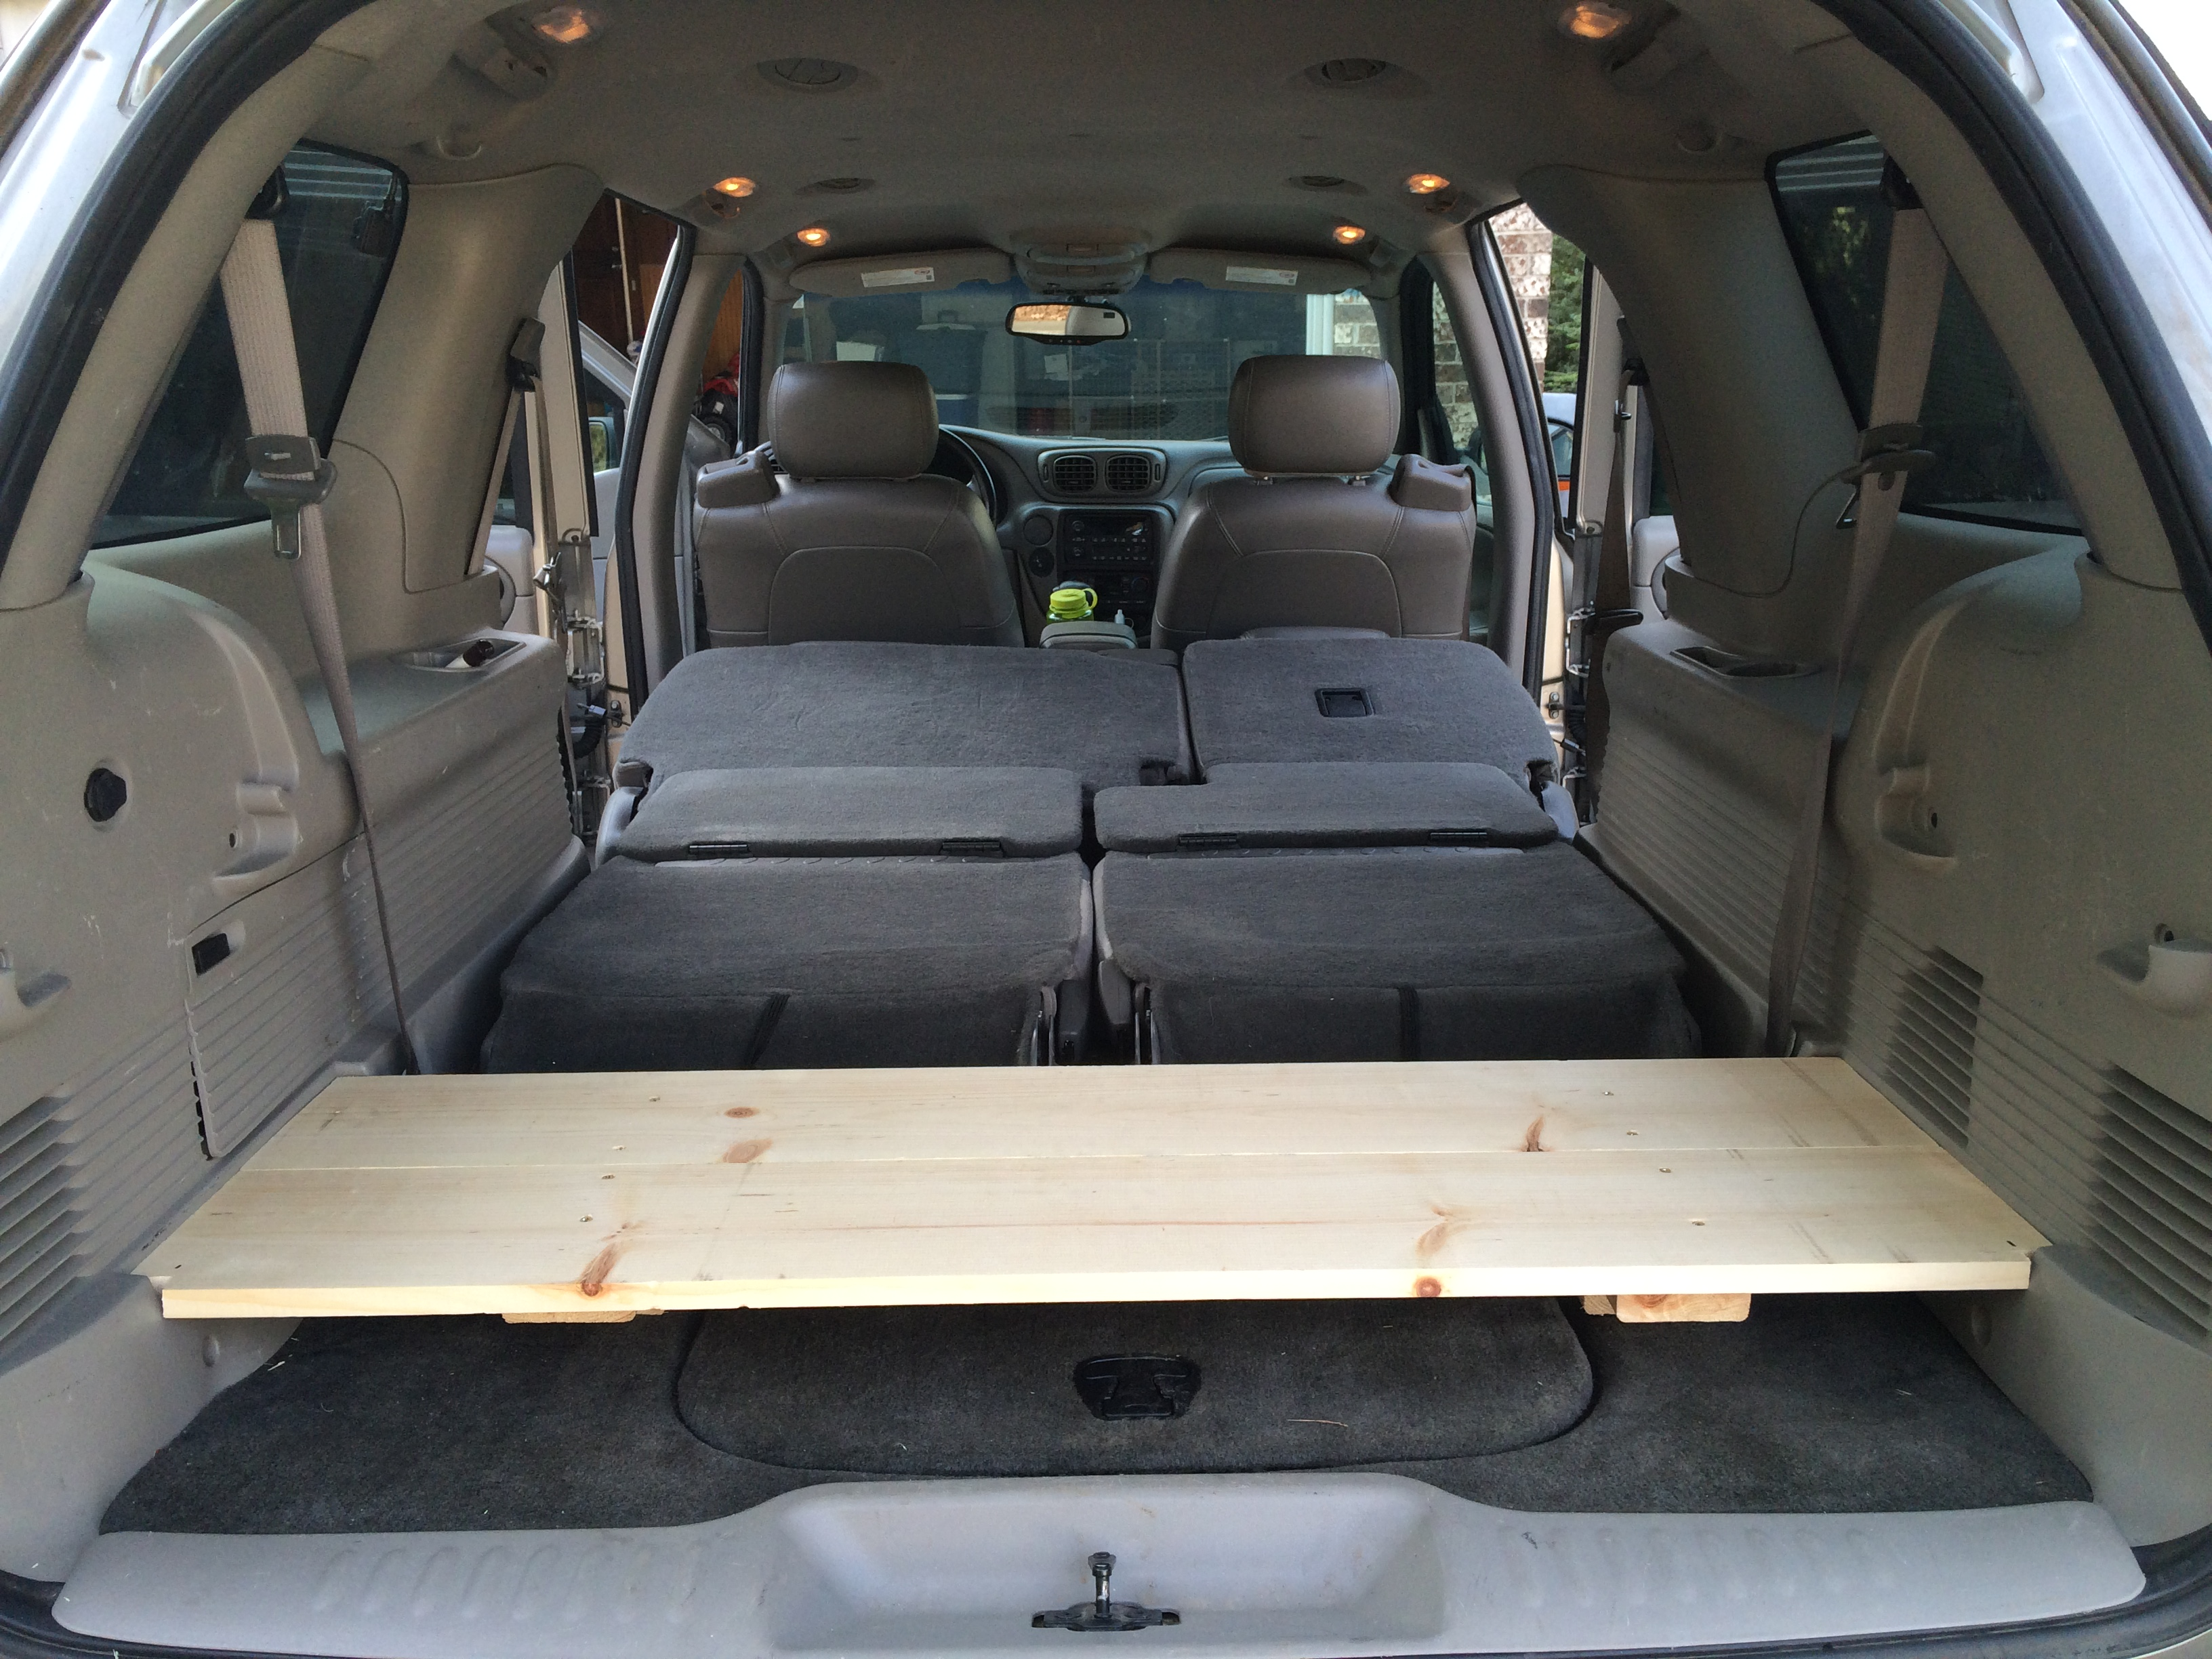 14 diy cargo shelf for chevy trailblazer robmcbryde com rh robmcbryde com SUV Cargo Area Privacy Covers SUV Accessories Organizer